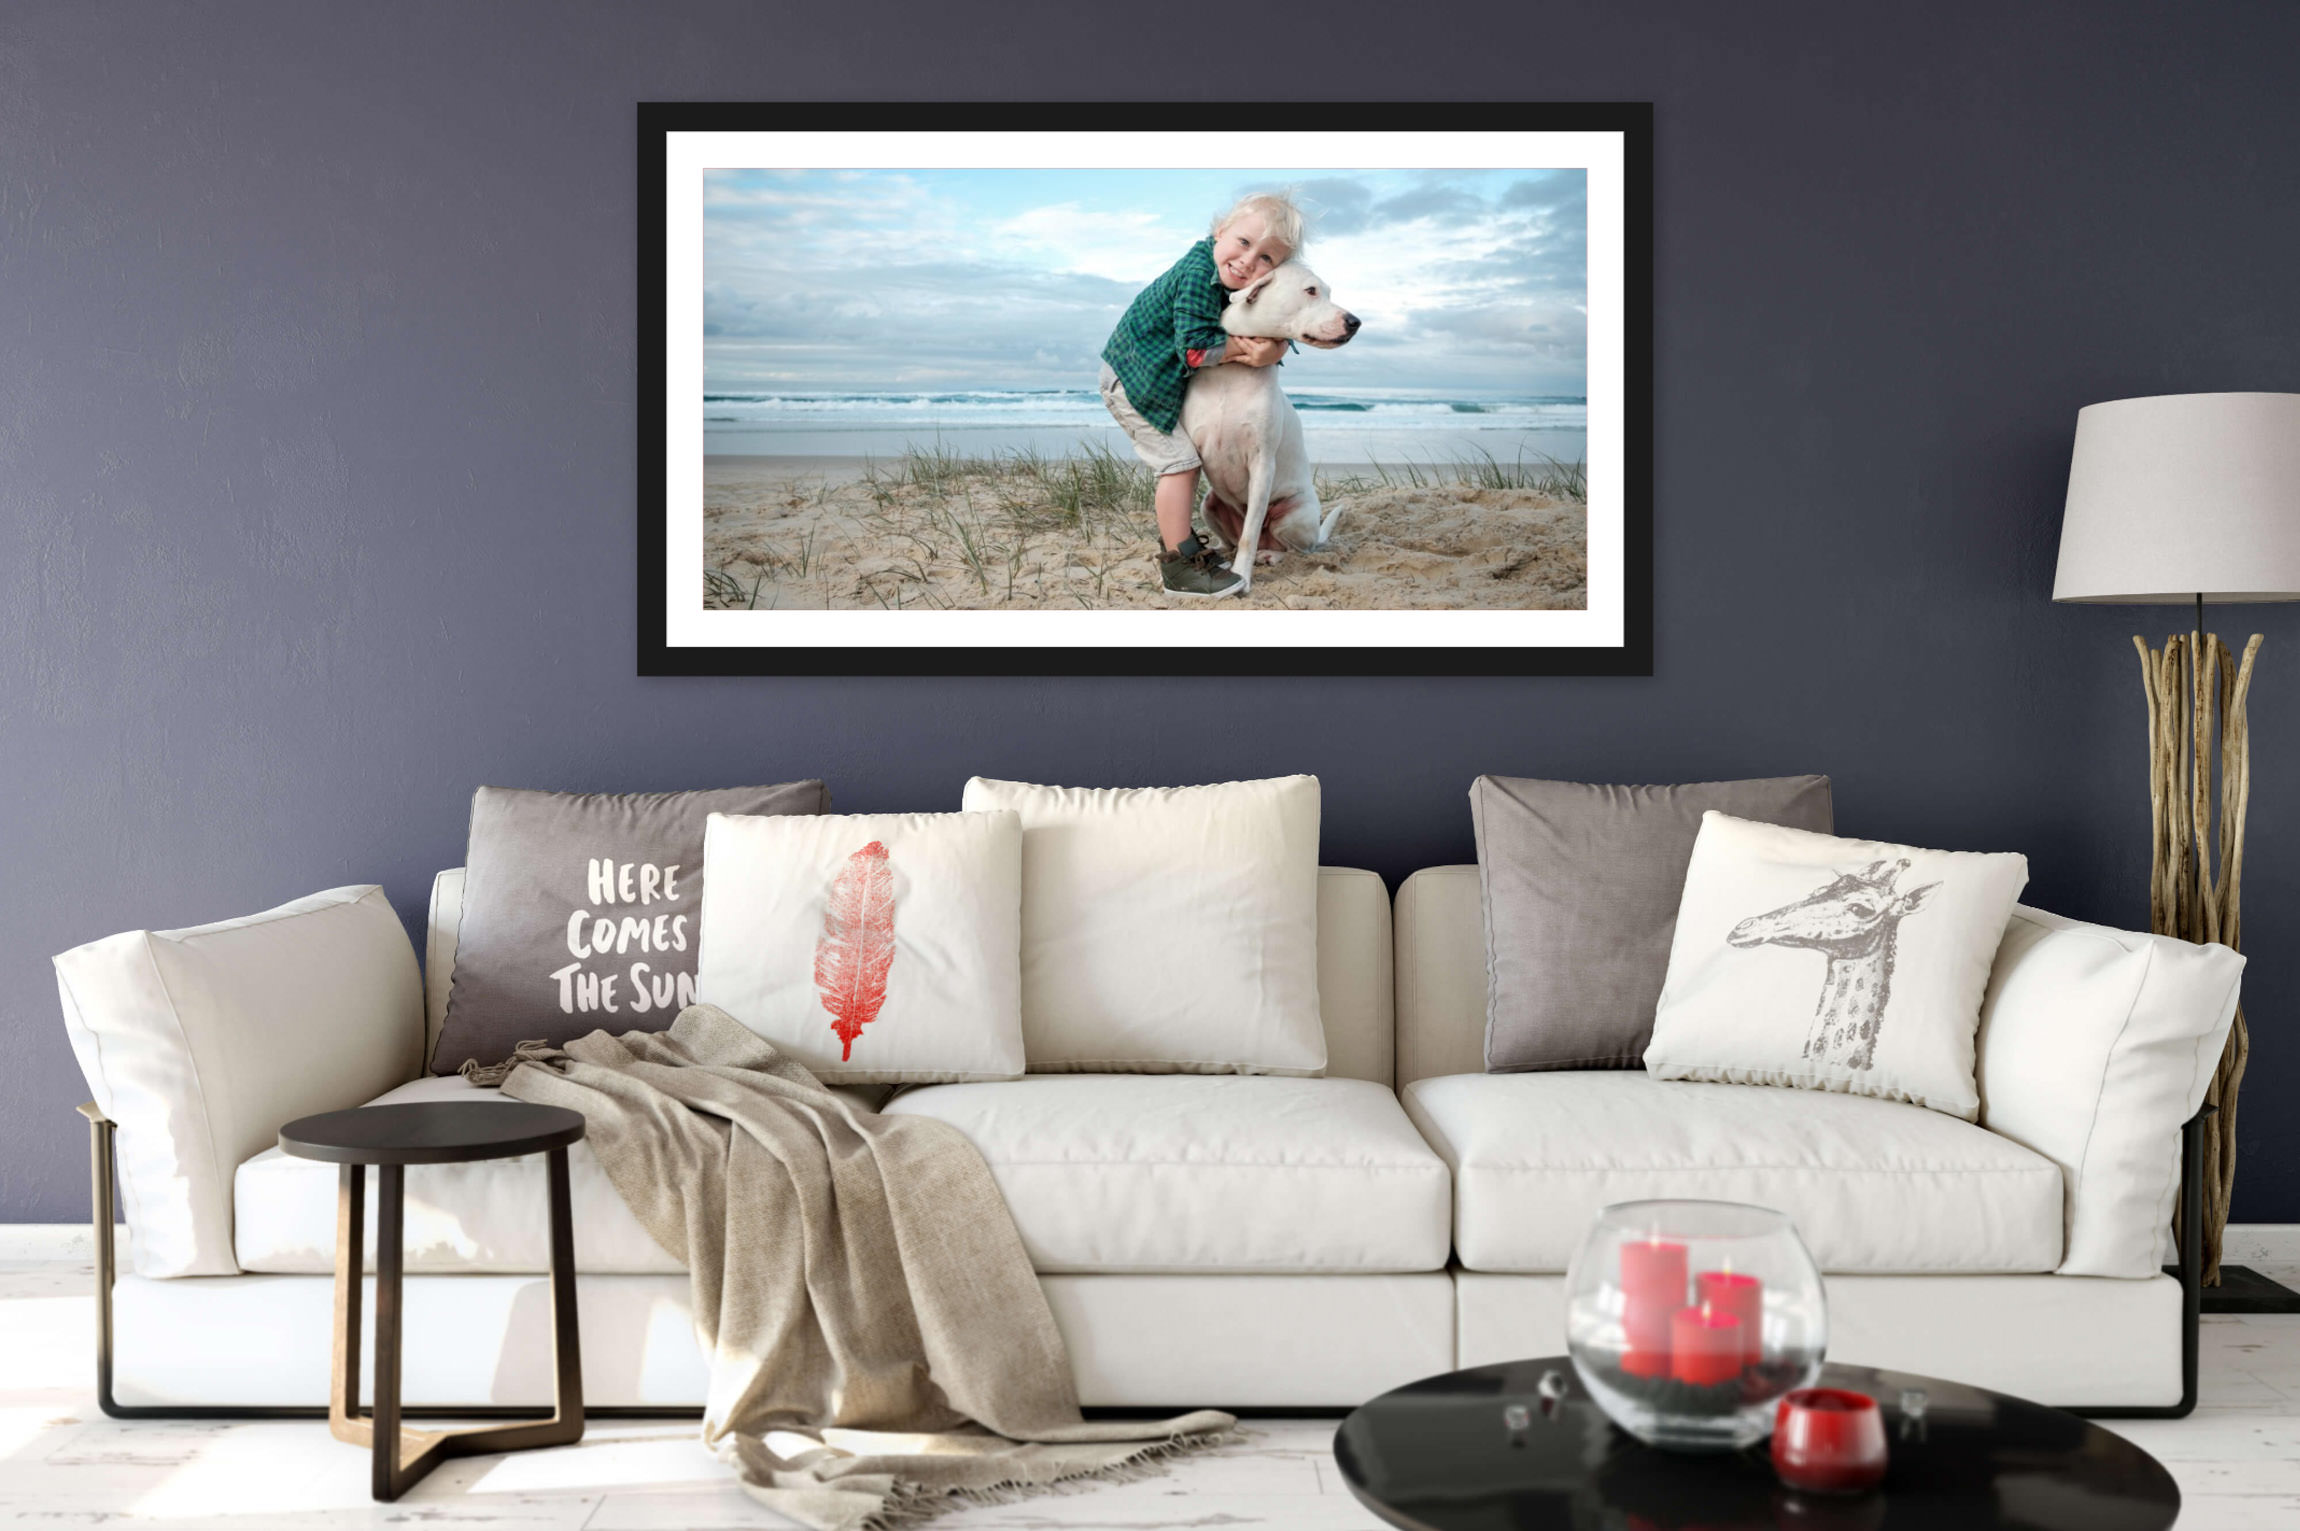 Child hugging dog at Palm Beach at sunset relaxed fun gold coast family photography